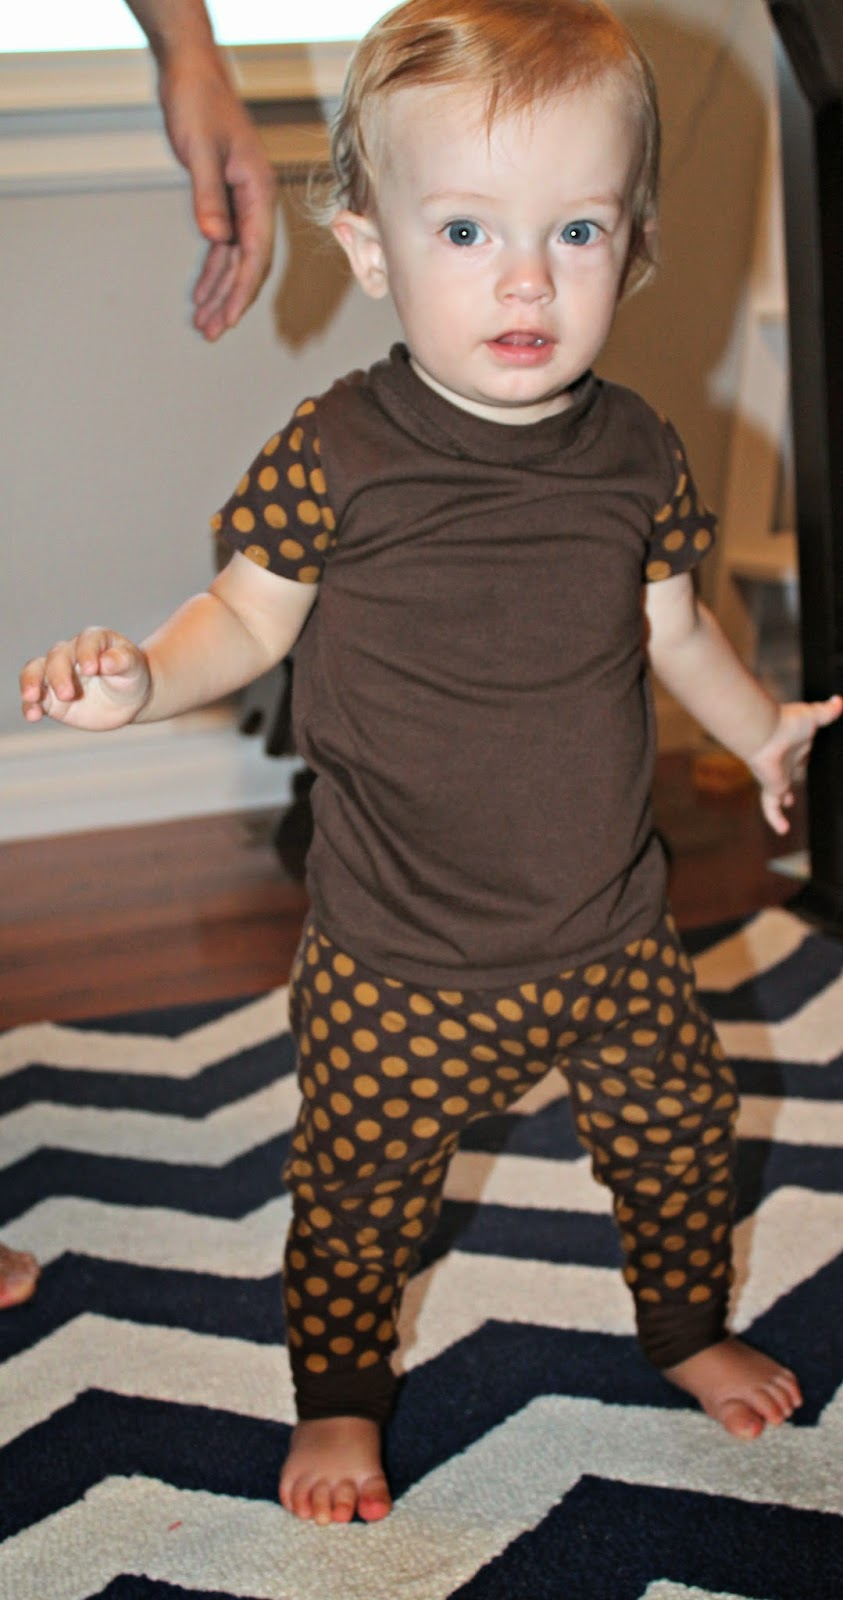 http://boutilierbabblings.blogspot.ca/2014/09/pattern-review-all-you-need-jammies.html?m=0